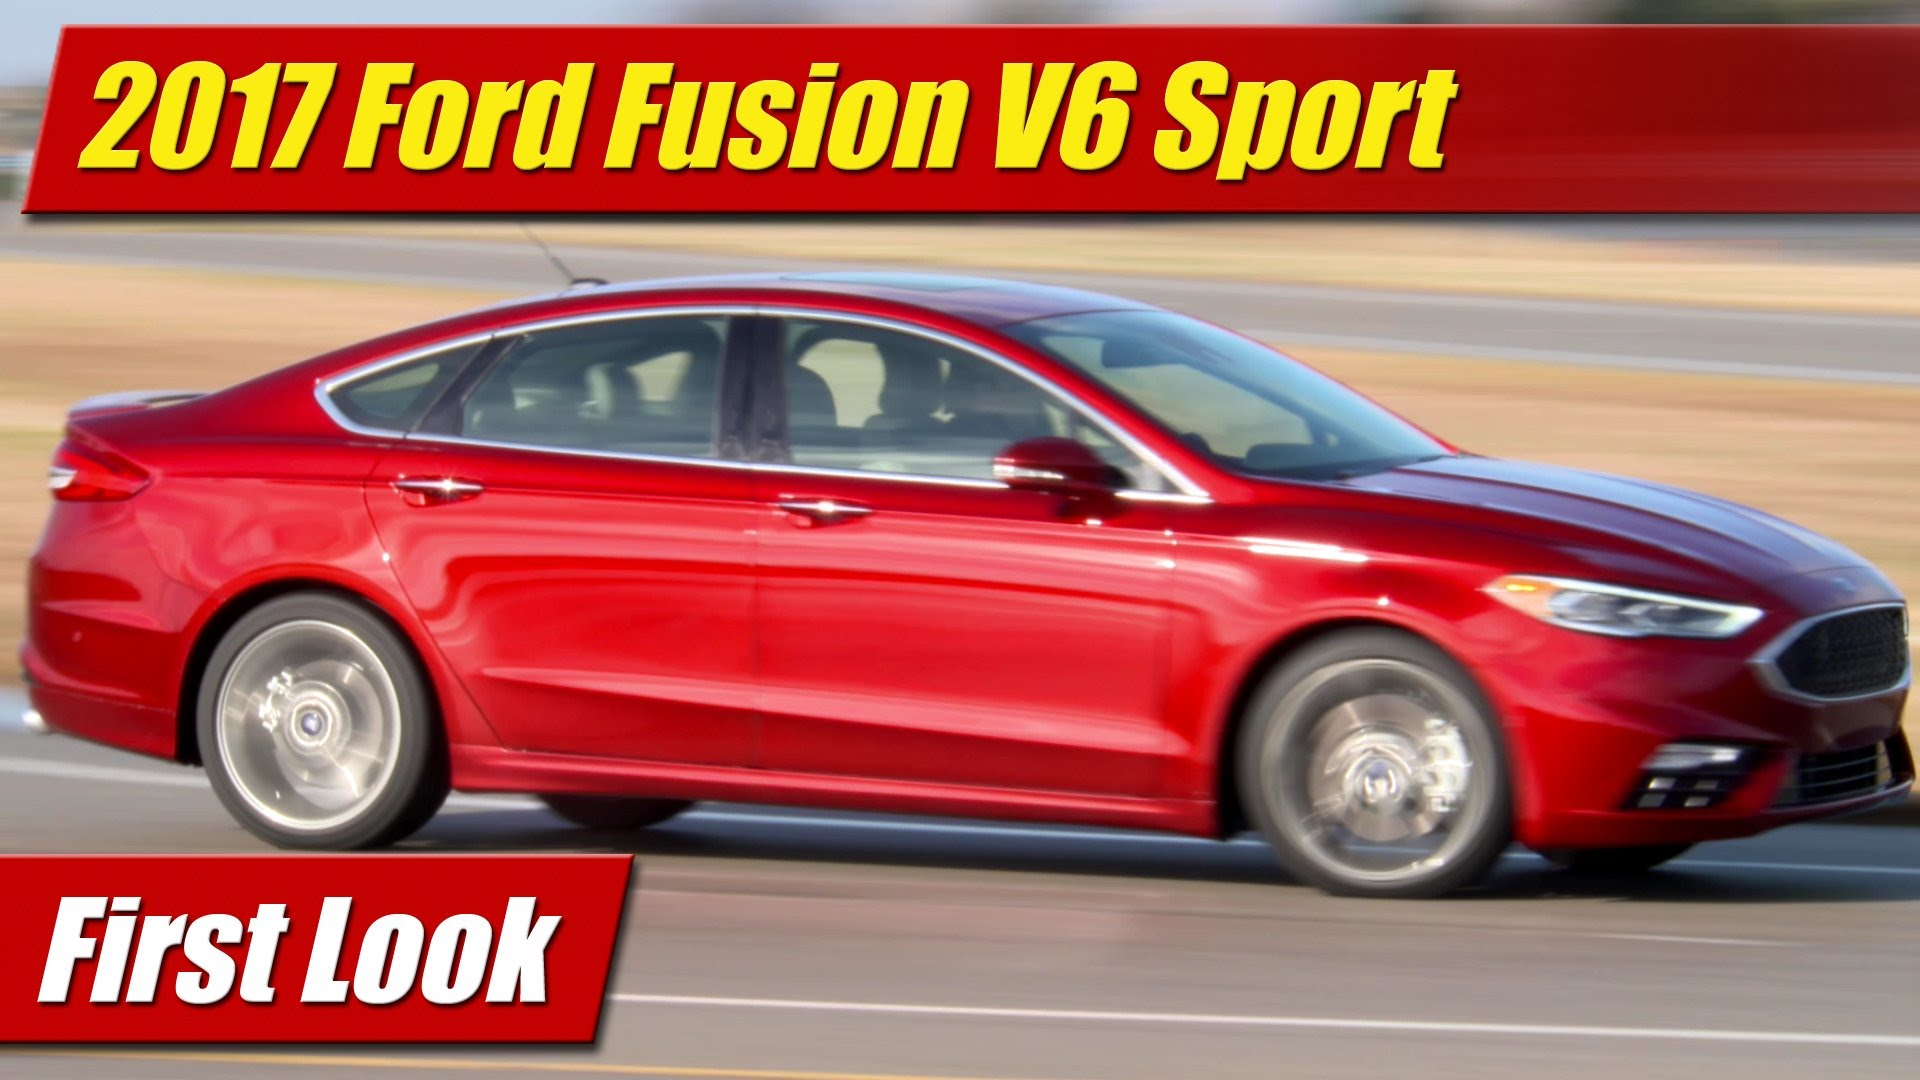 First Look 2017 Ford Fusion V6 Sport